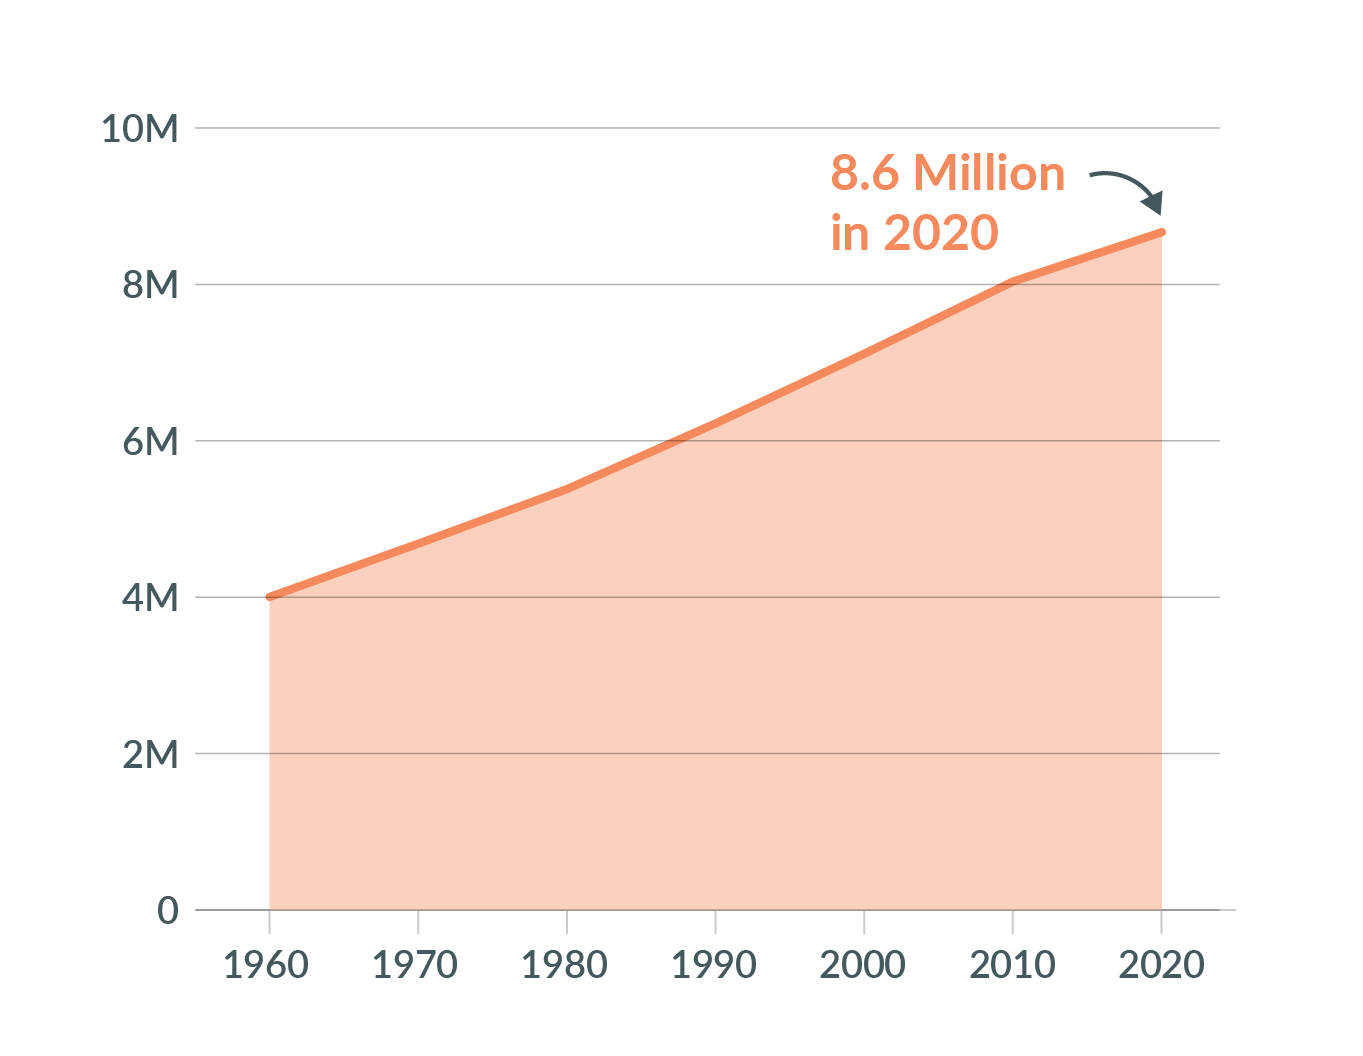 Line chart showing Virginia's population growth since 1960, with 2020 showing 8.6 million